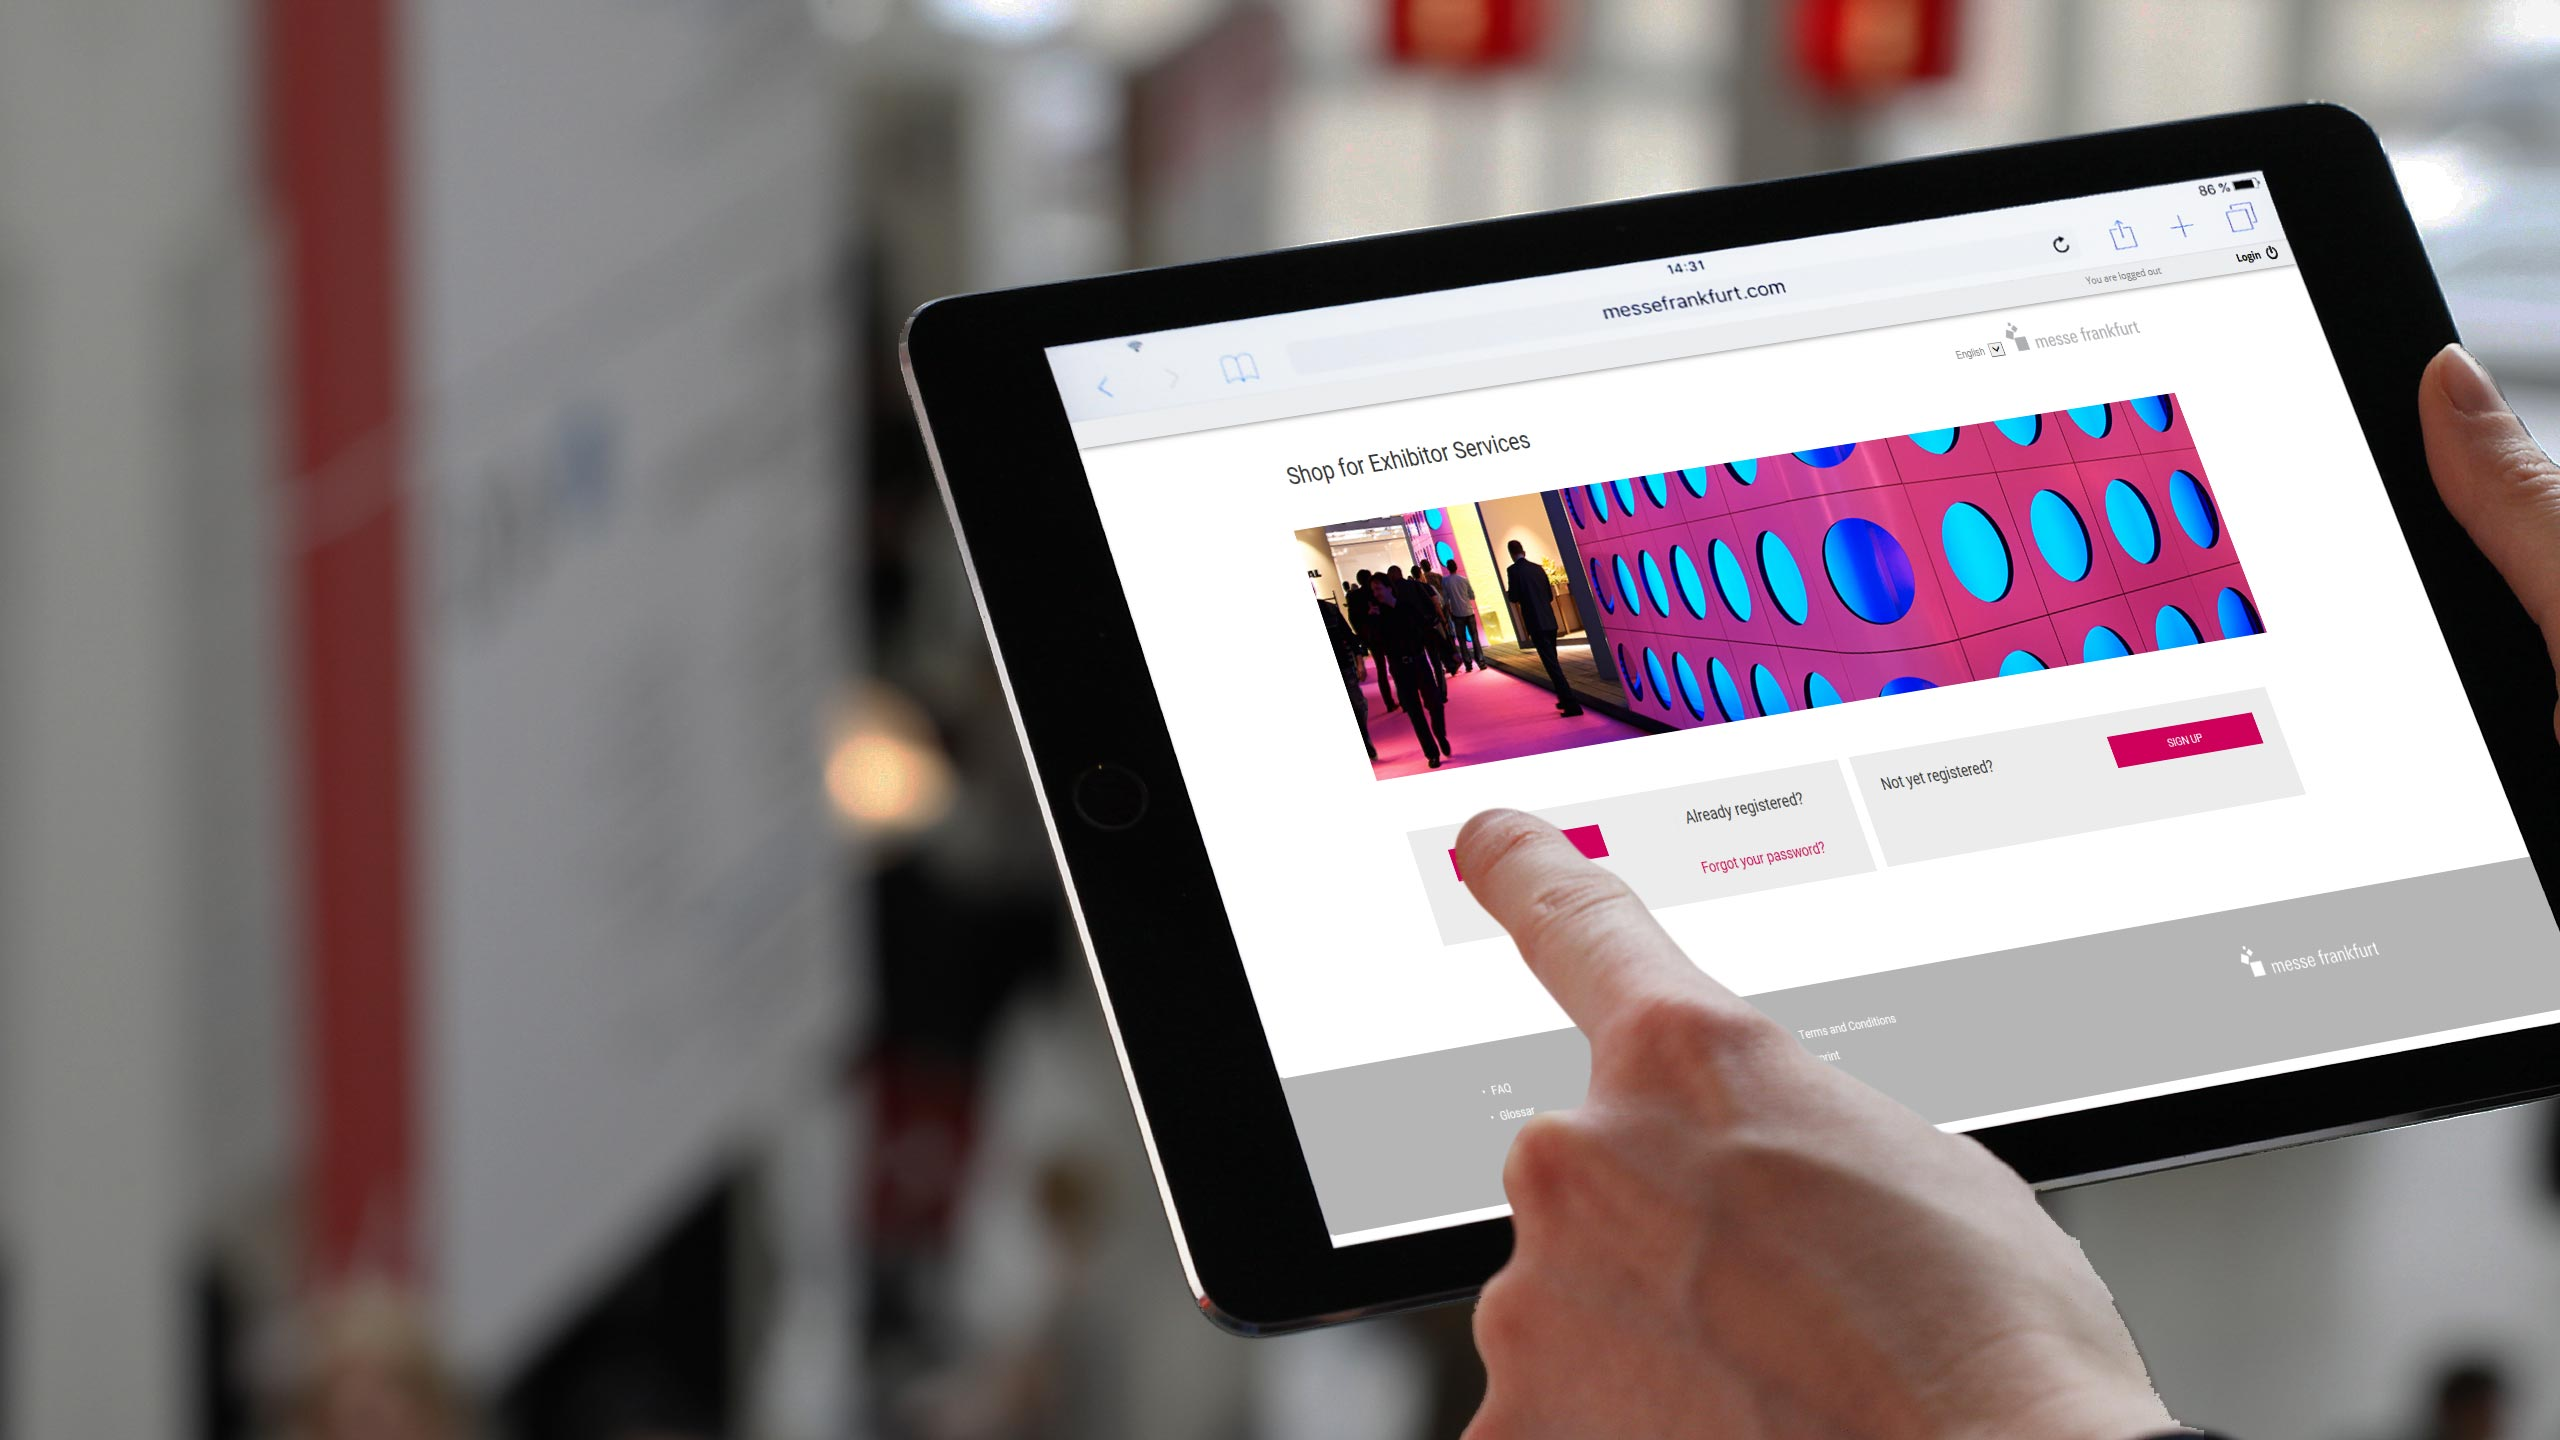 Shop for Exhibitor Services on an iPad